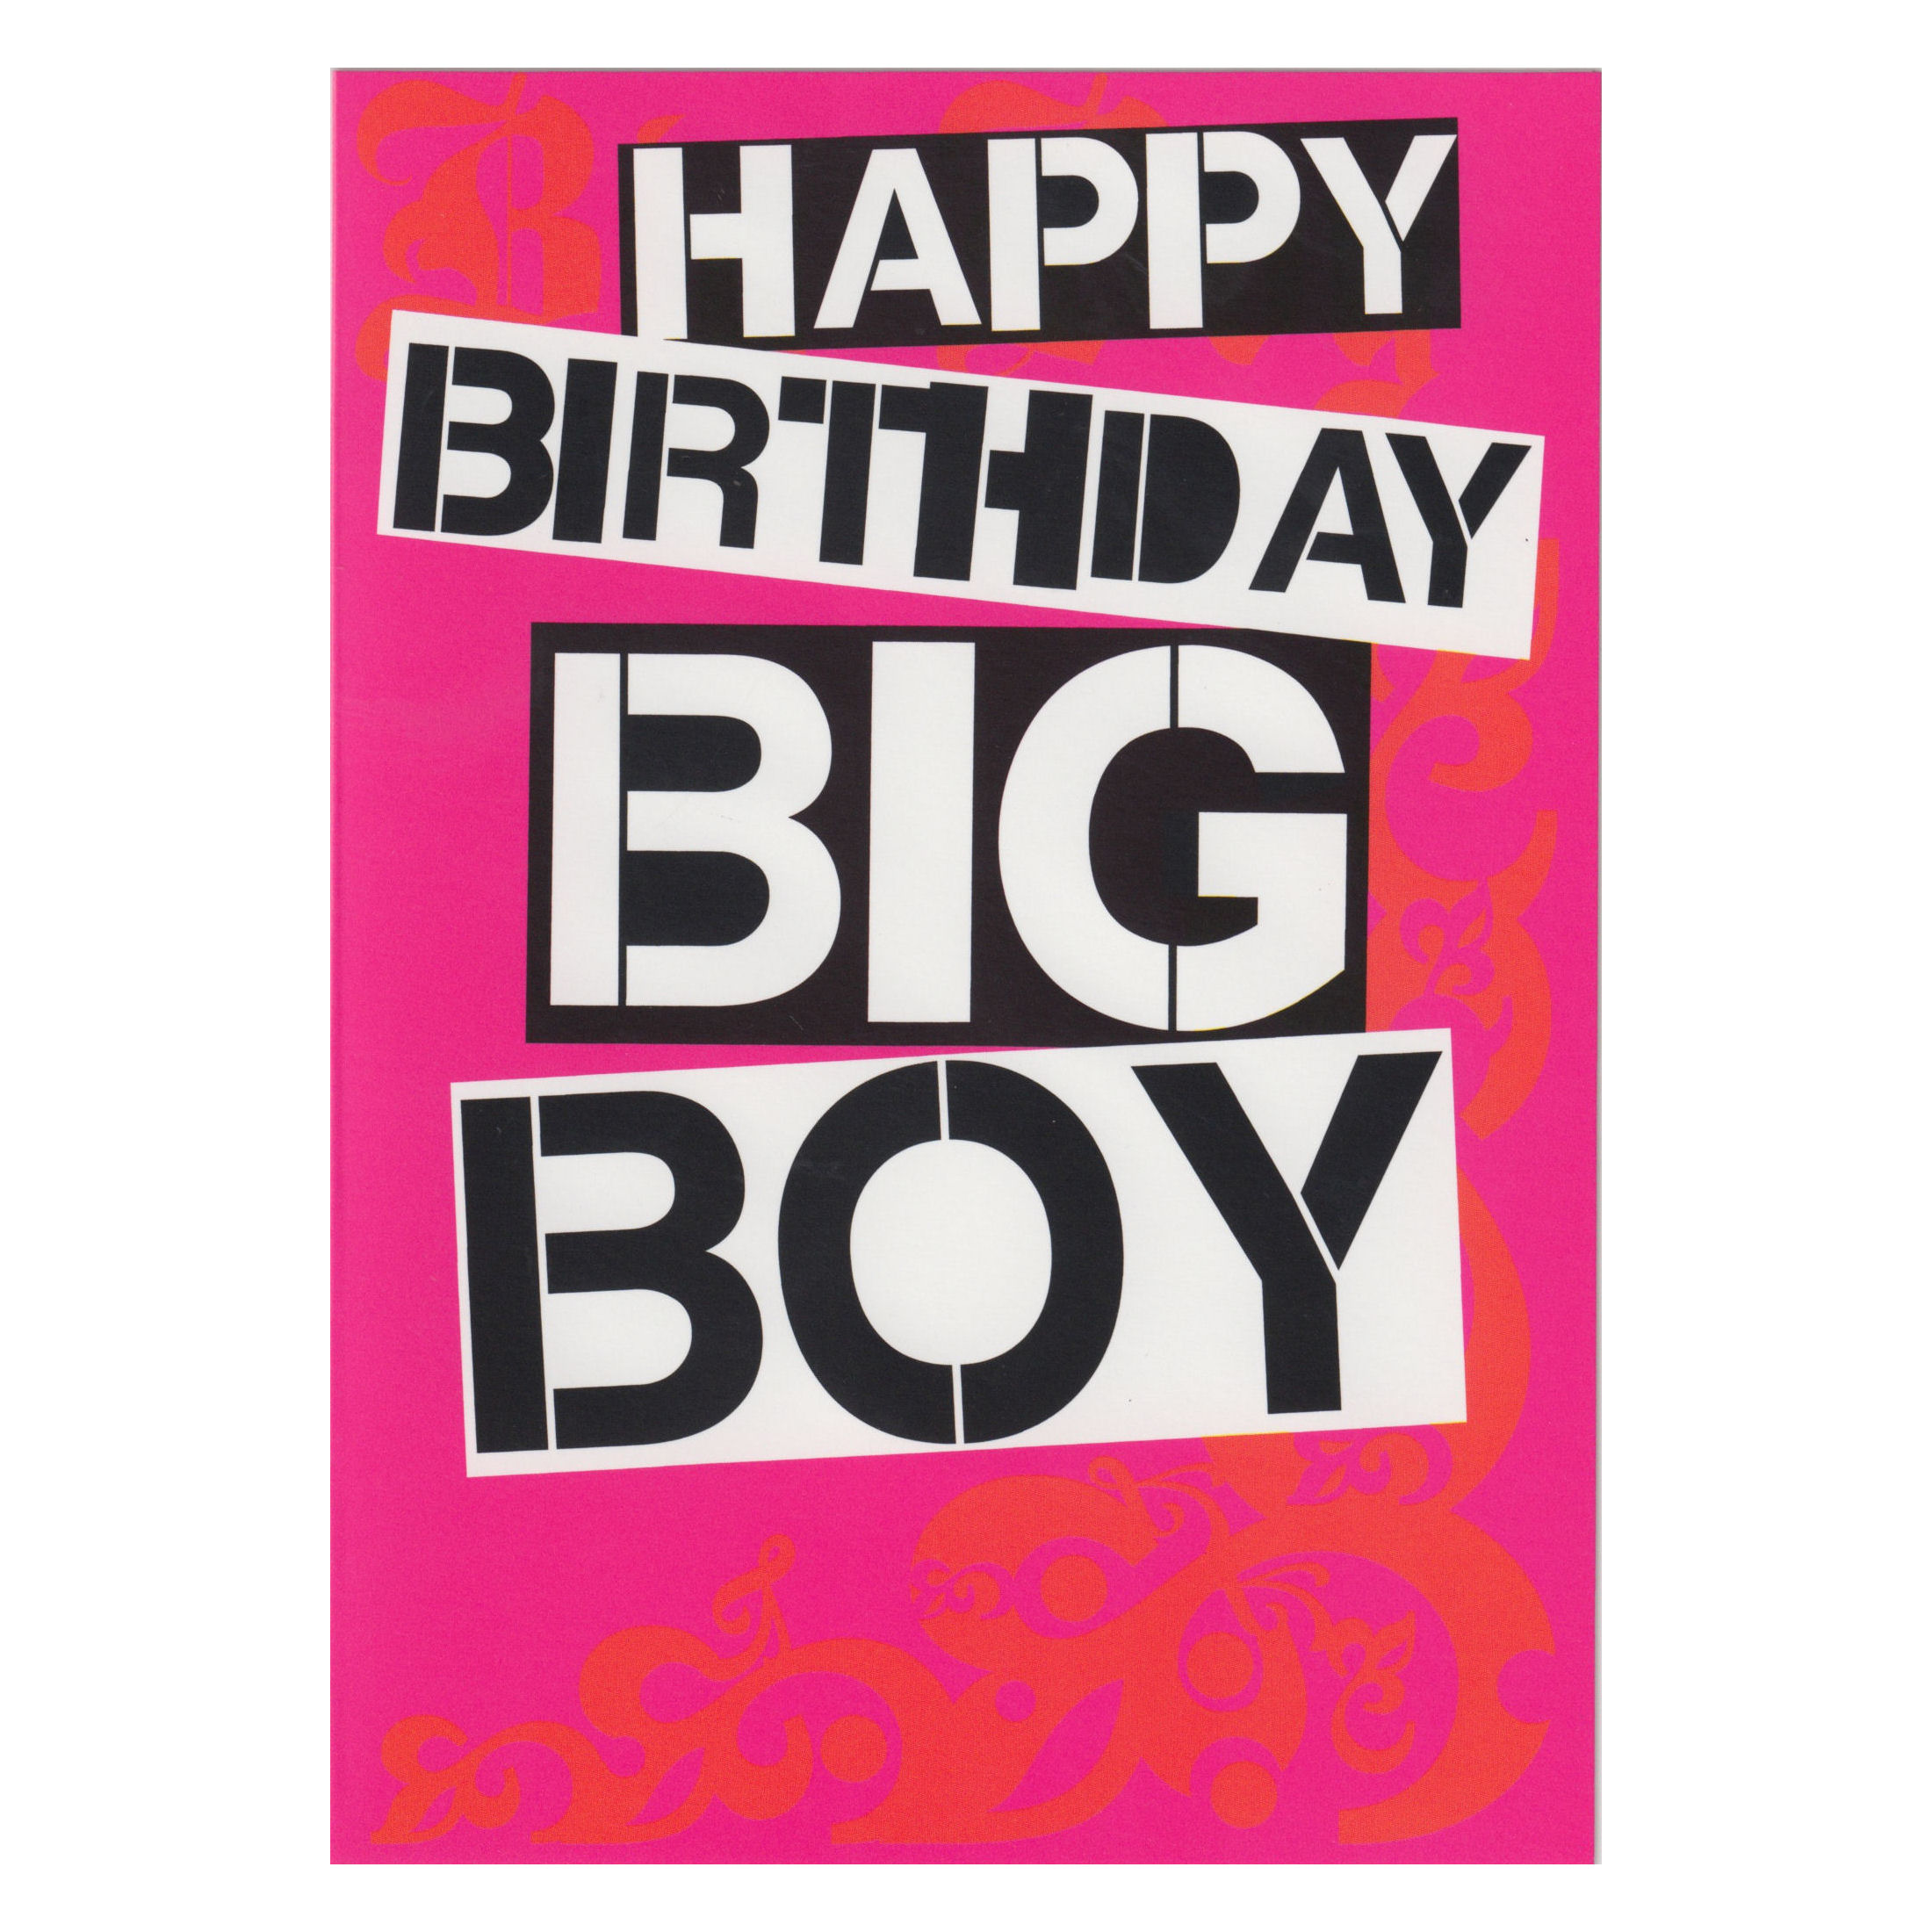 HAPPY BIRTHDAY BIG BOY GREETING CARD RETRO ADULT HUMOUR BLANK GIFT